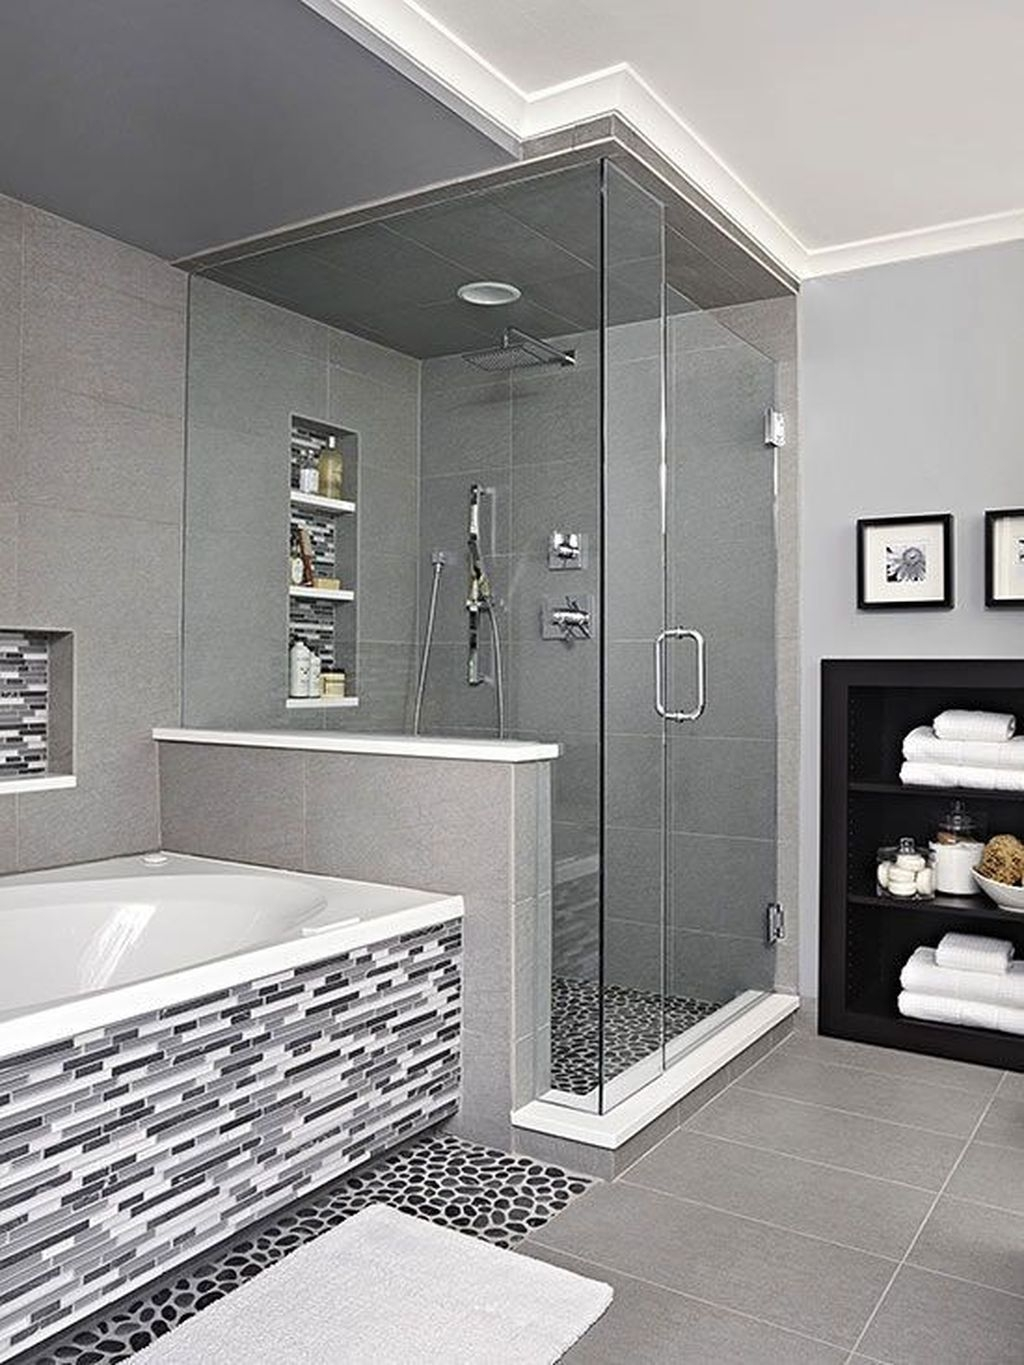 Inspiring Master Bathroom Decor And Design Ideas32